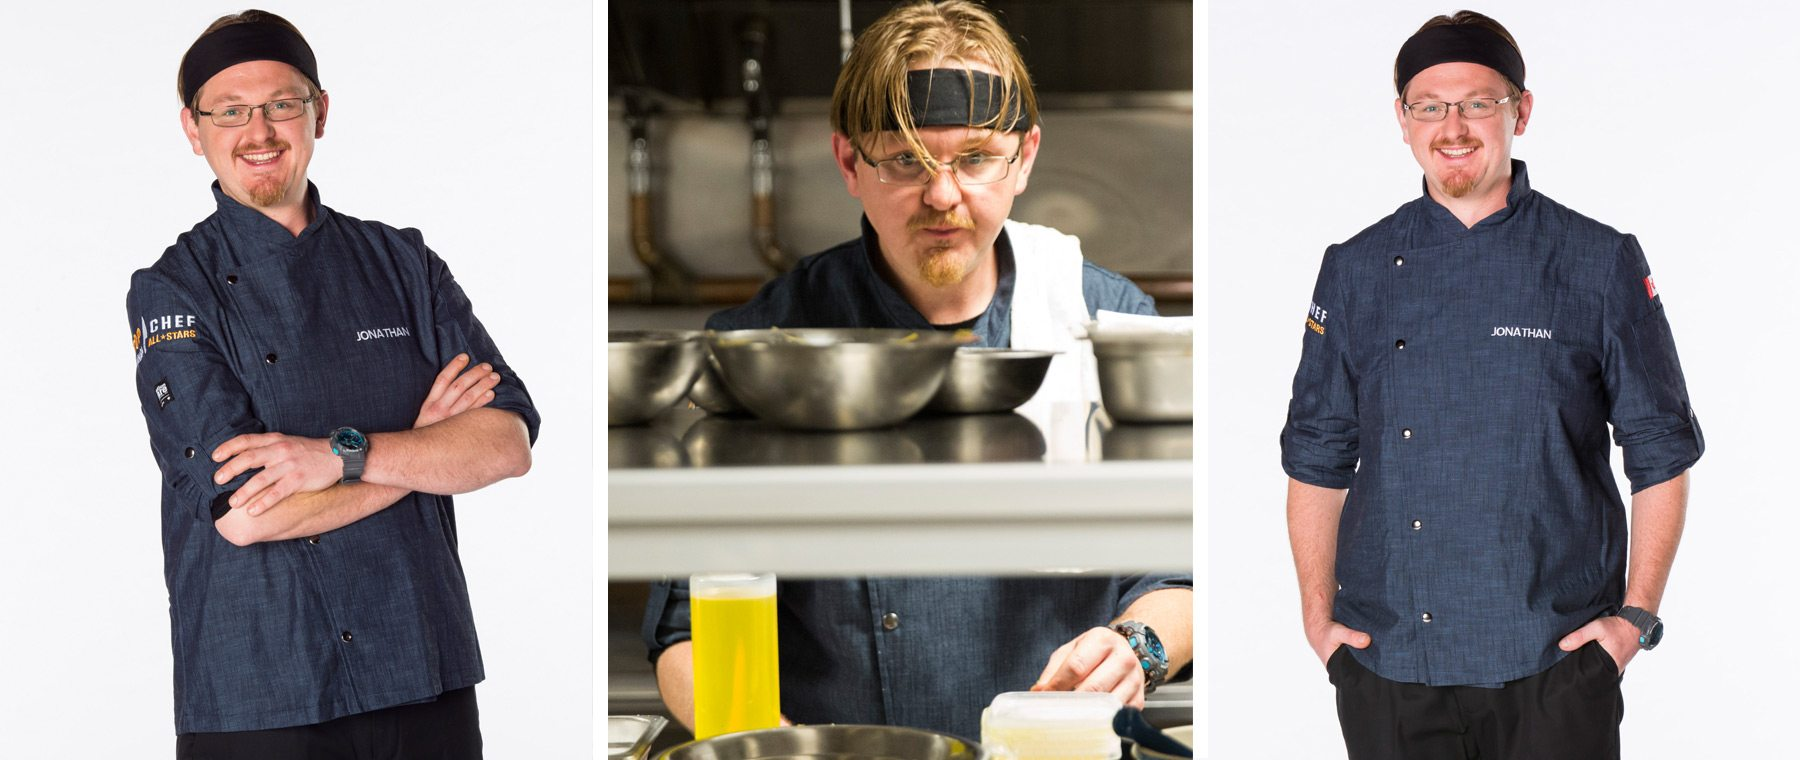 Knives out! Ottawa's Jonathan Korecki goes head-to-head against best in all-star Top Chef